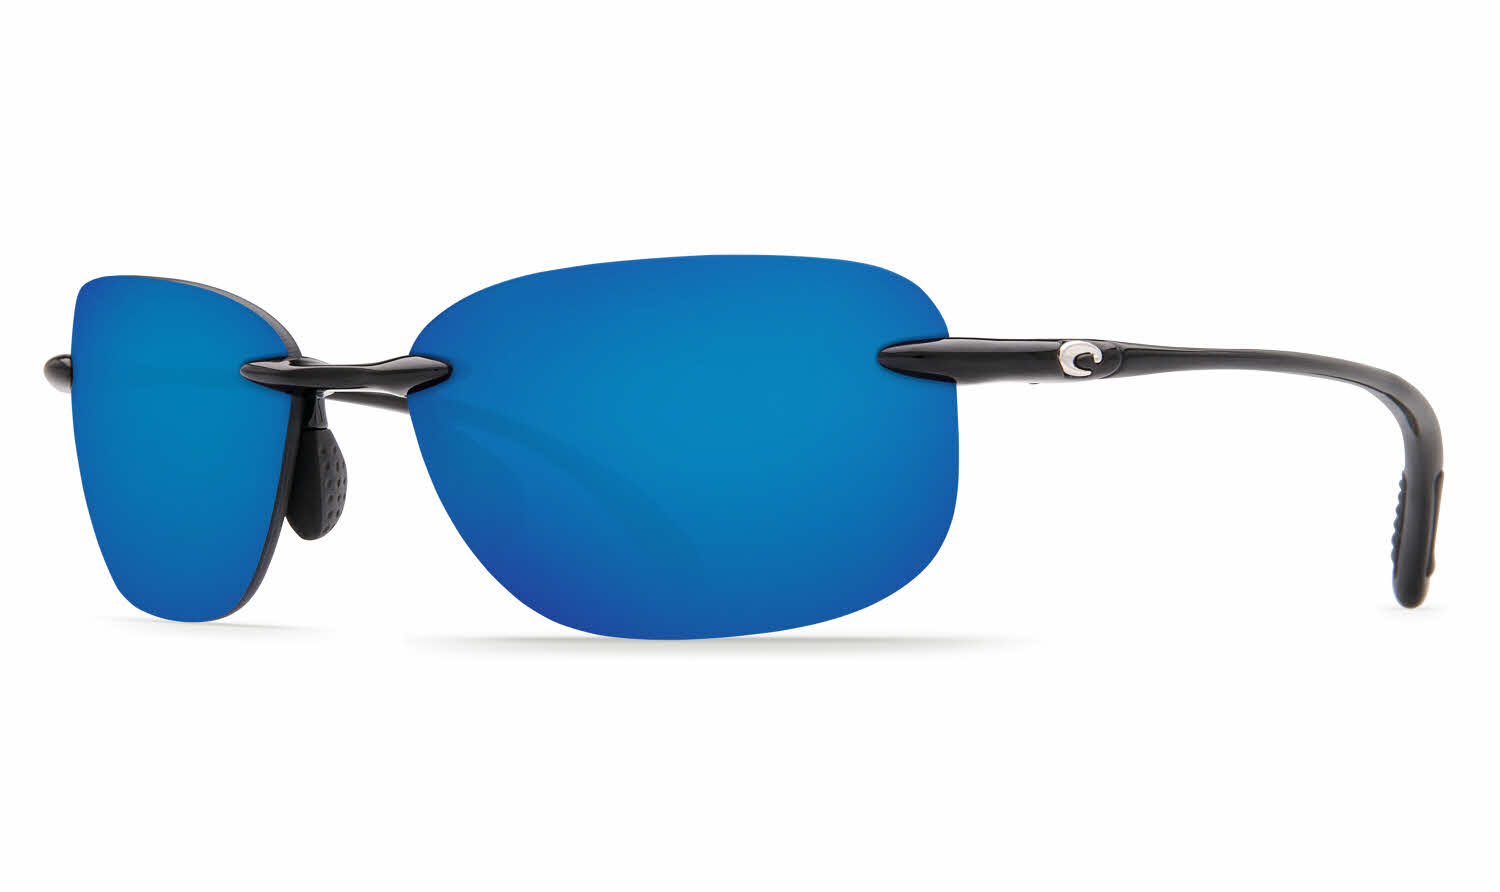 Costa Seagrove Prescription Sunglasses